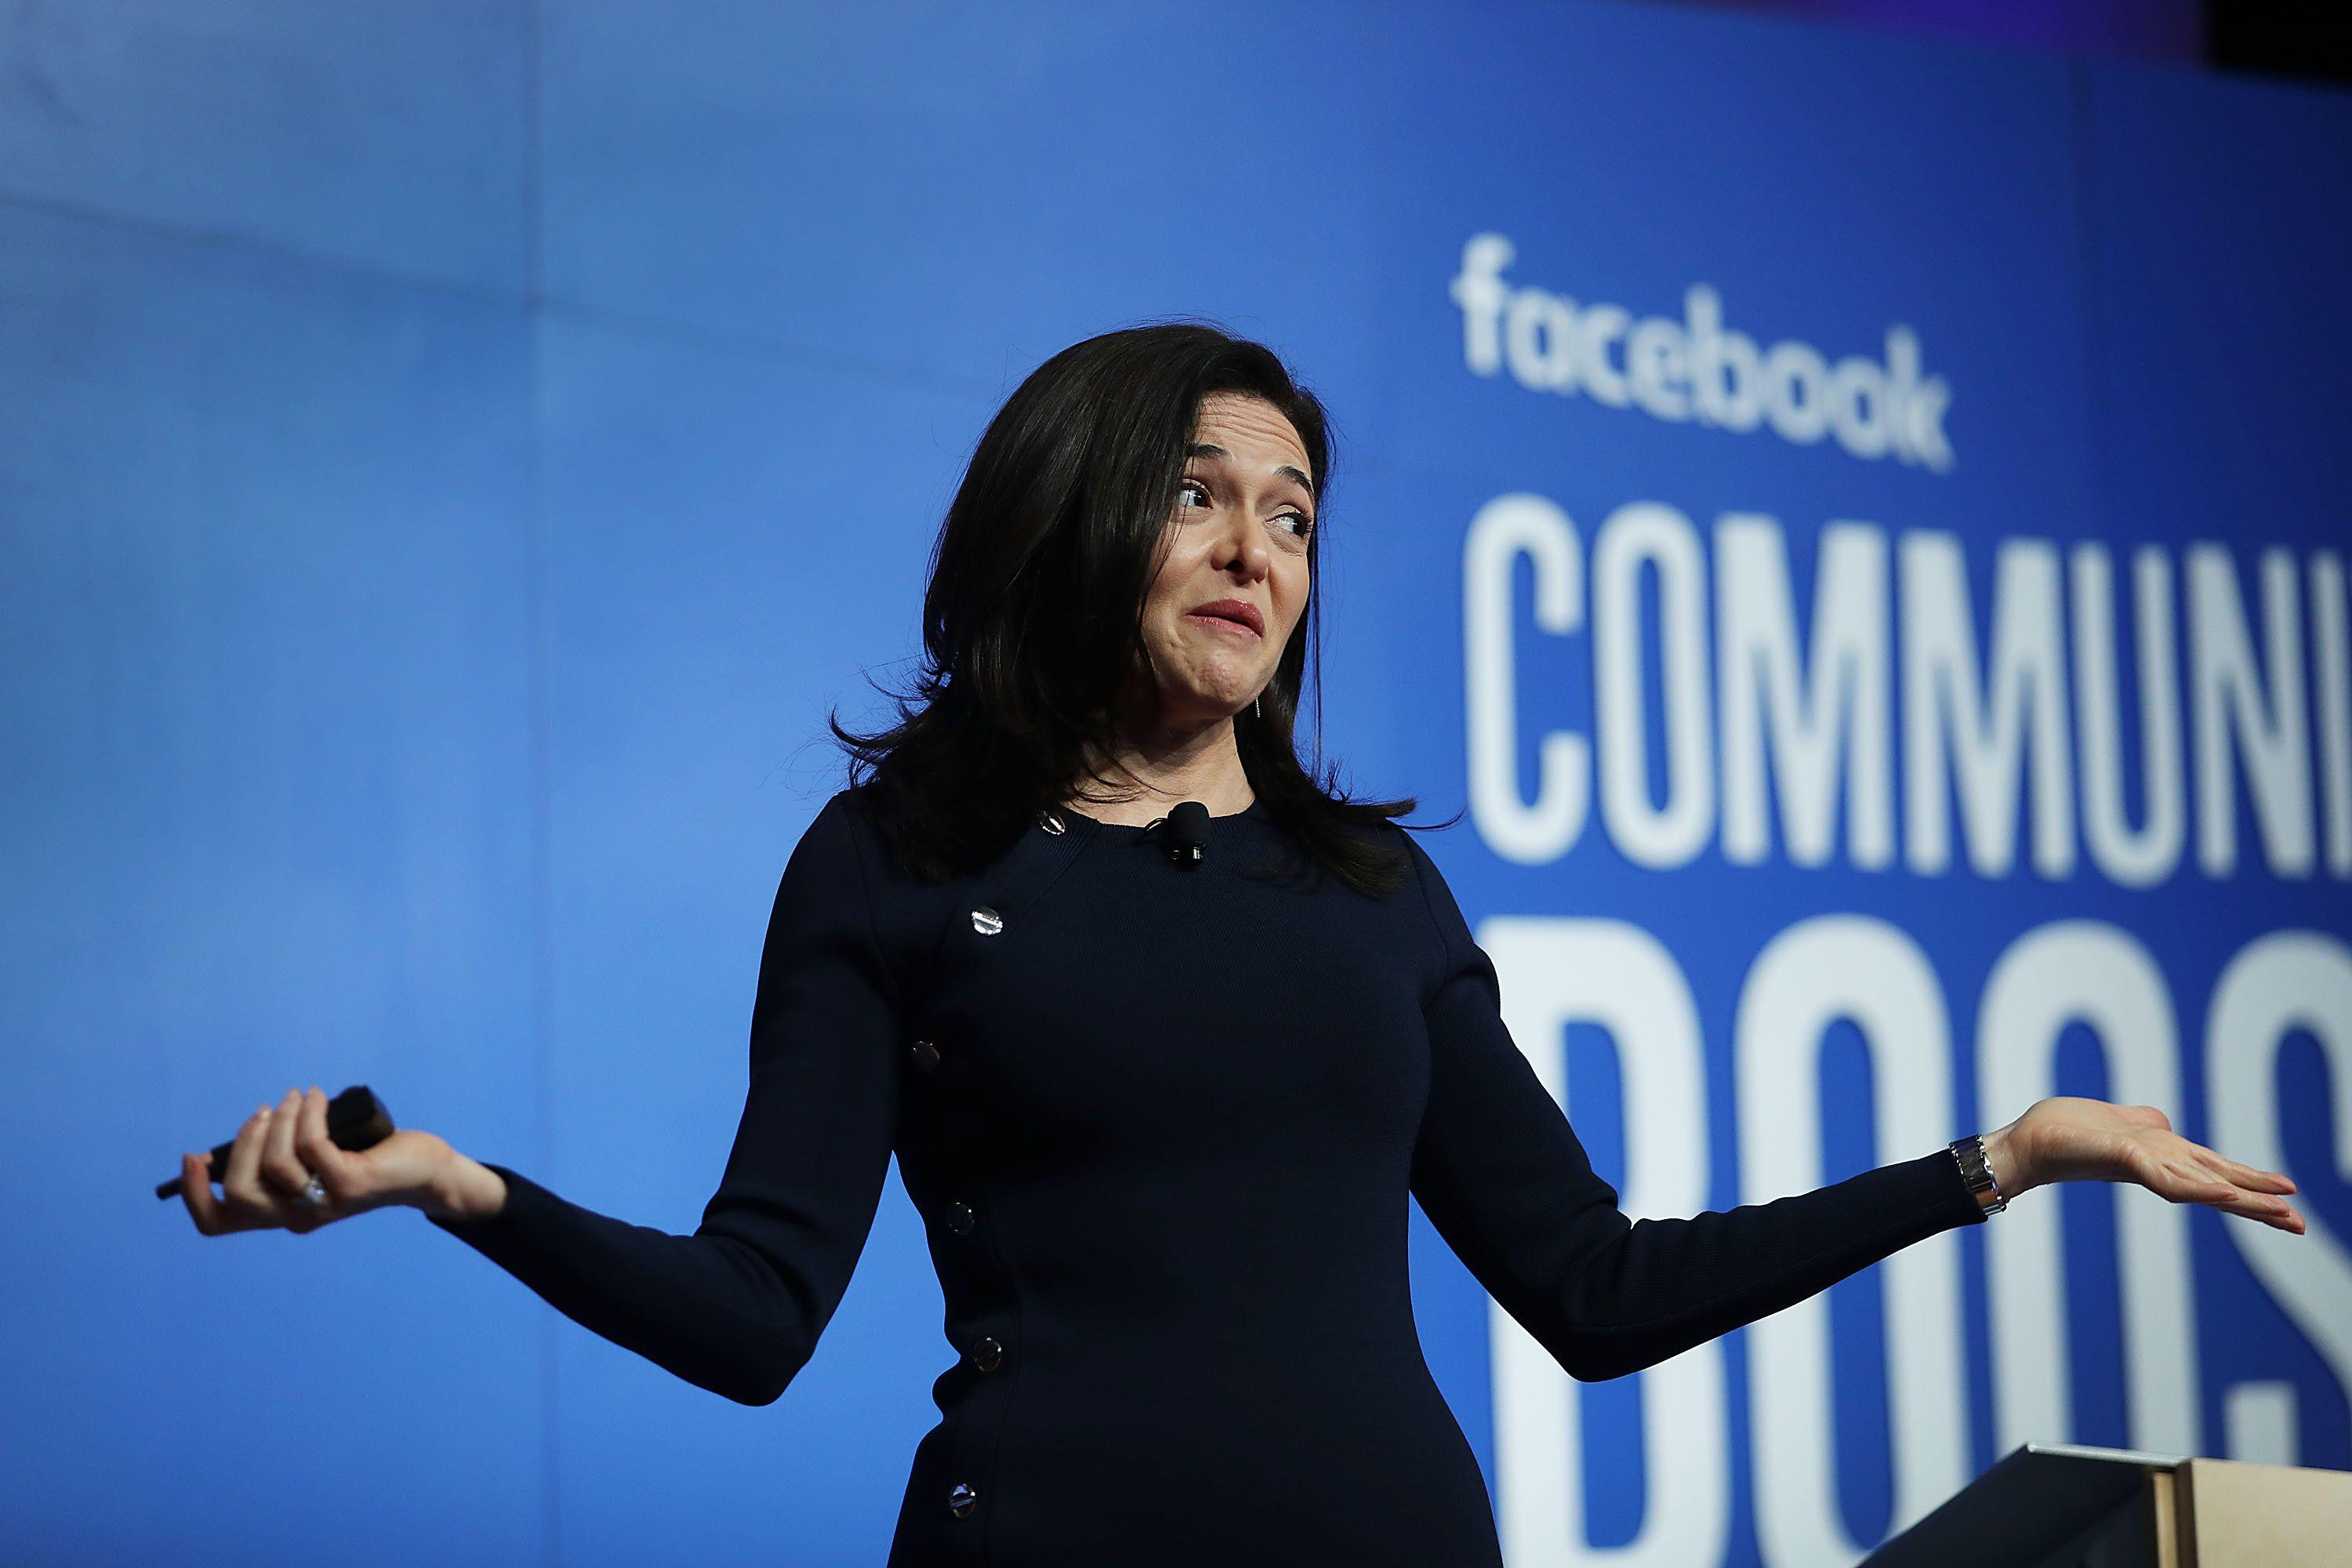 2 toxic storylines for Facebook won't go away in 2019